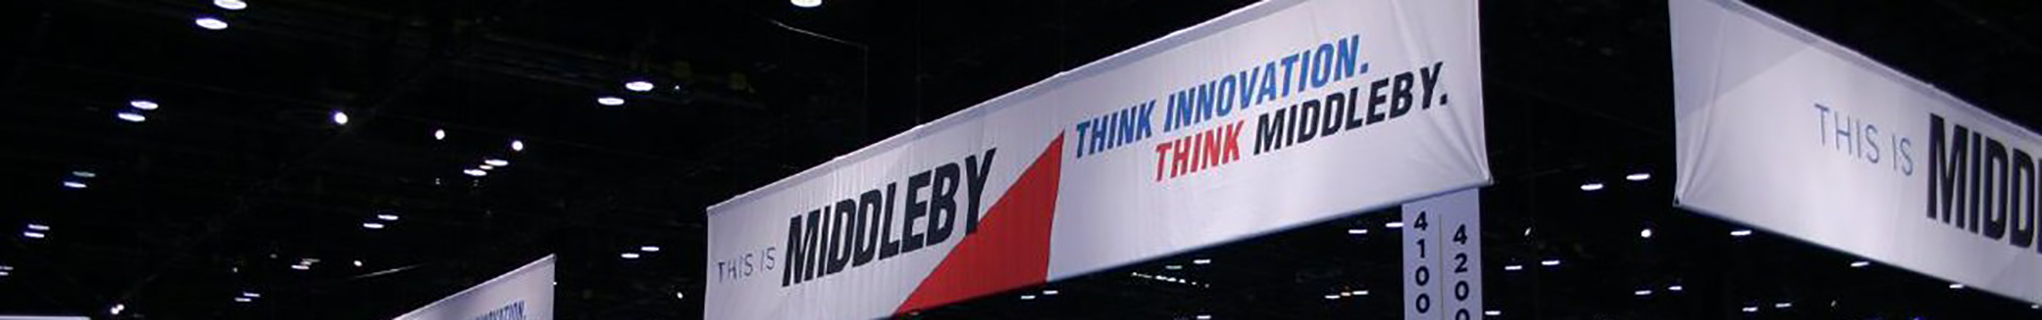 Middleby: Think Innovation, Think Middleby